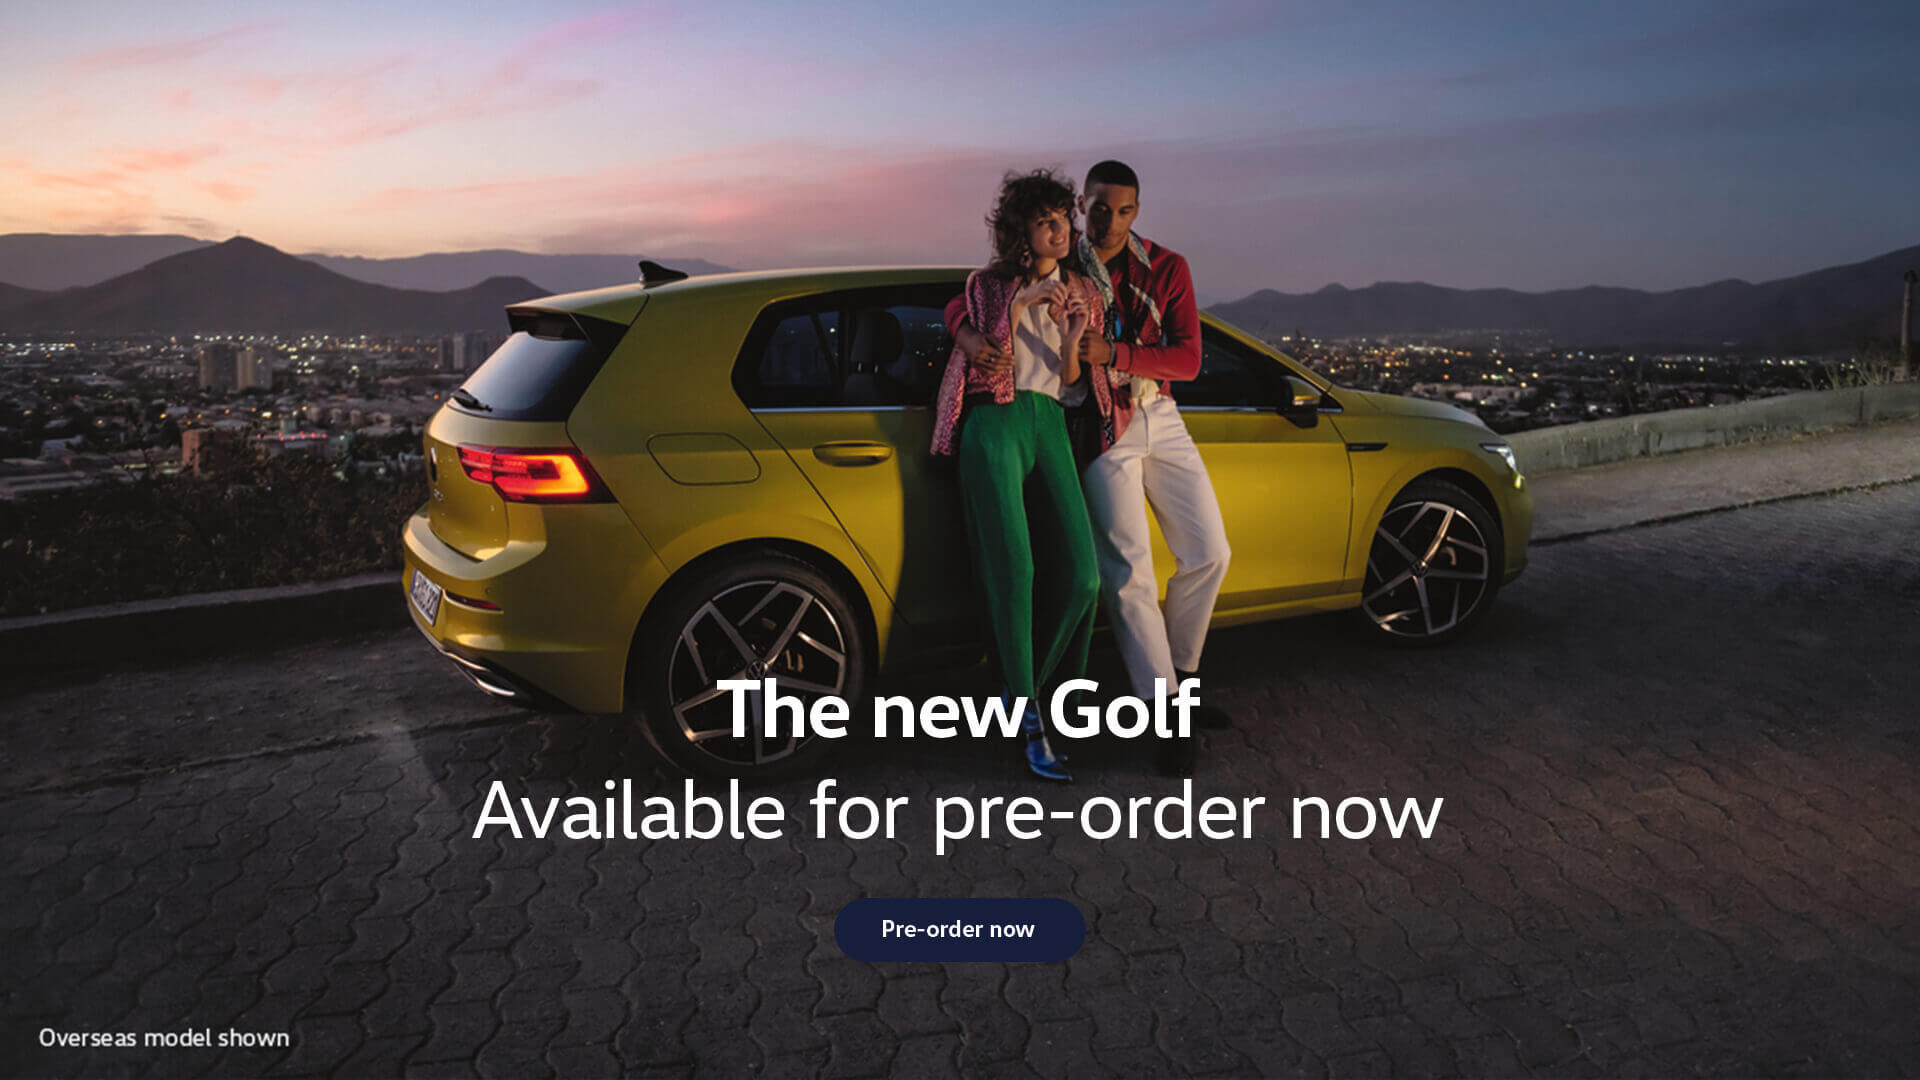 The new Volkswagen Gold. Available for pre-order now